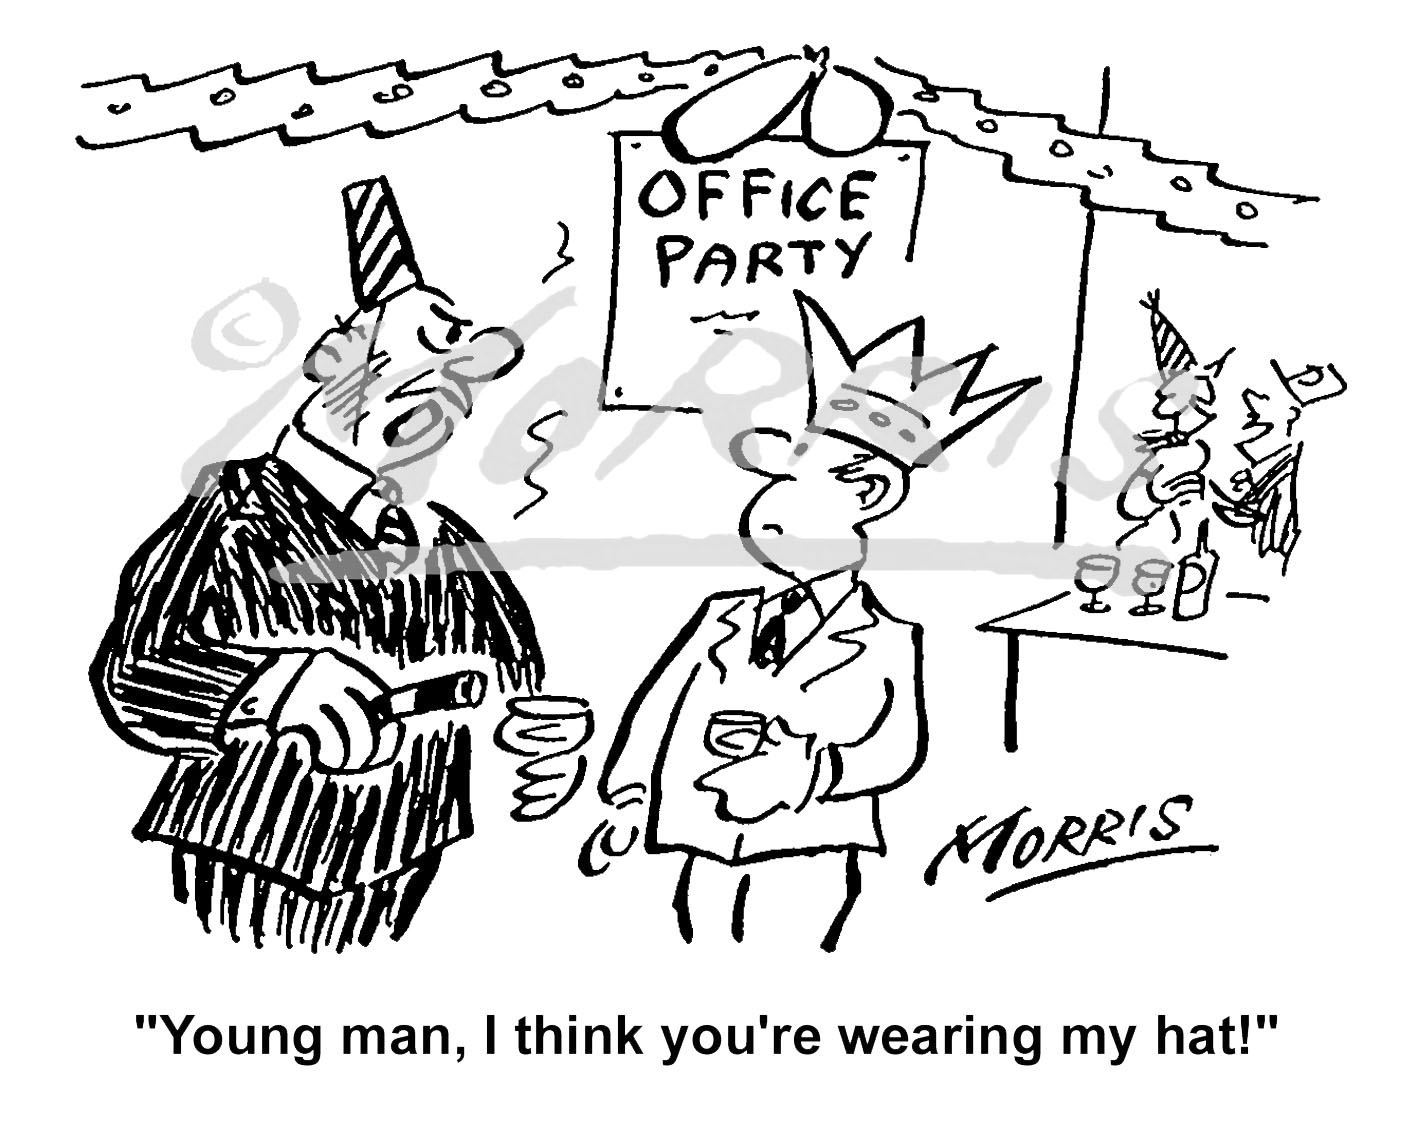 Office Christmas party cartoon Ref: 1261bw